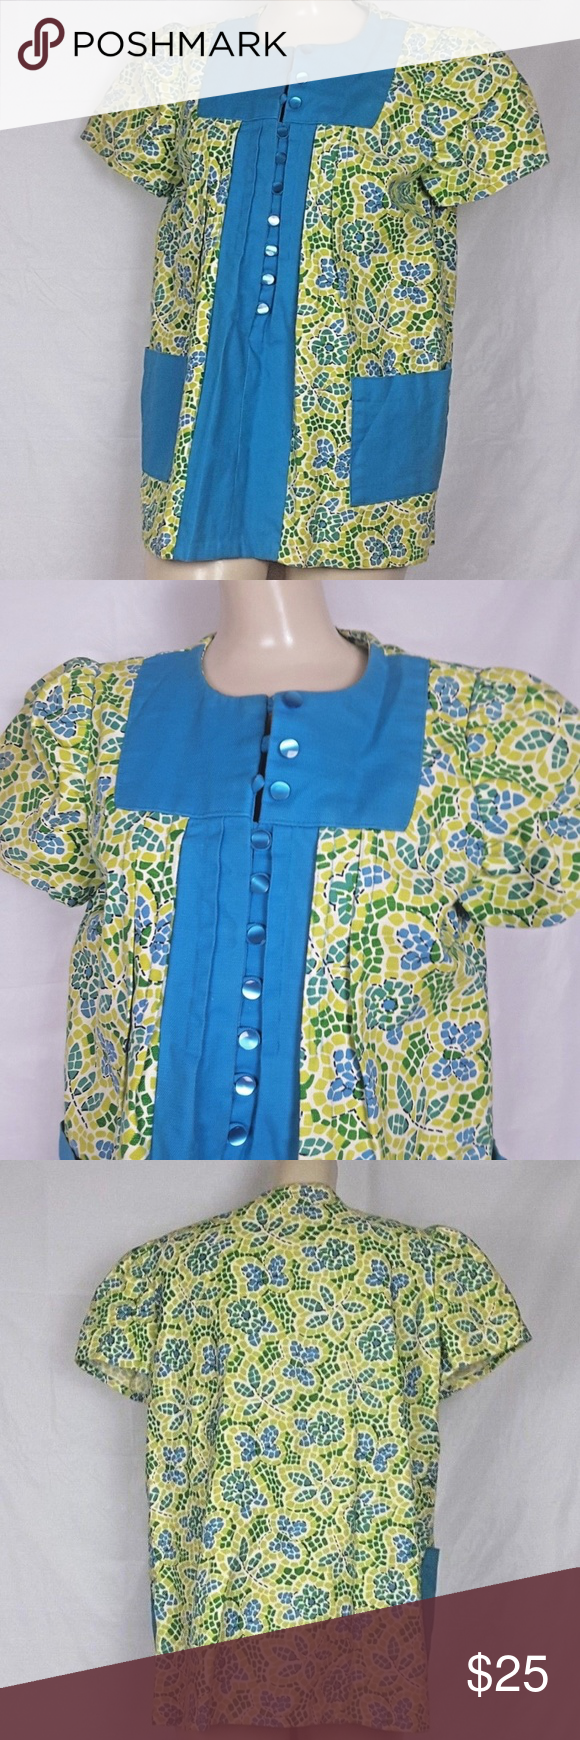 95d685b14f403 Vtg 70's sz M Turquoise & Lime Green Smock Top Vintage 1970's size M  Turquoise, Lime & Green Smock Top (Maternity Top) Button Front with Pearl  and loop ...